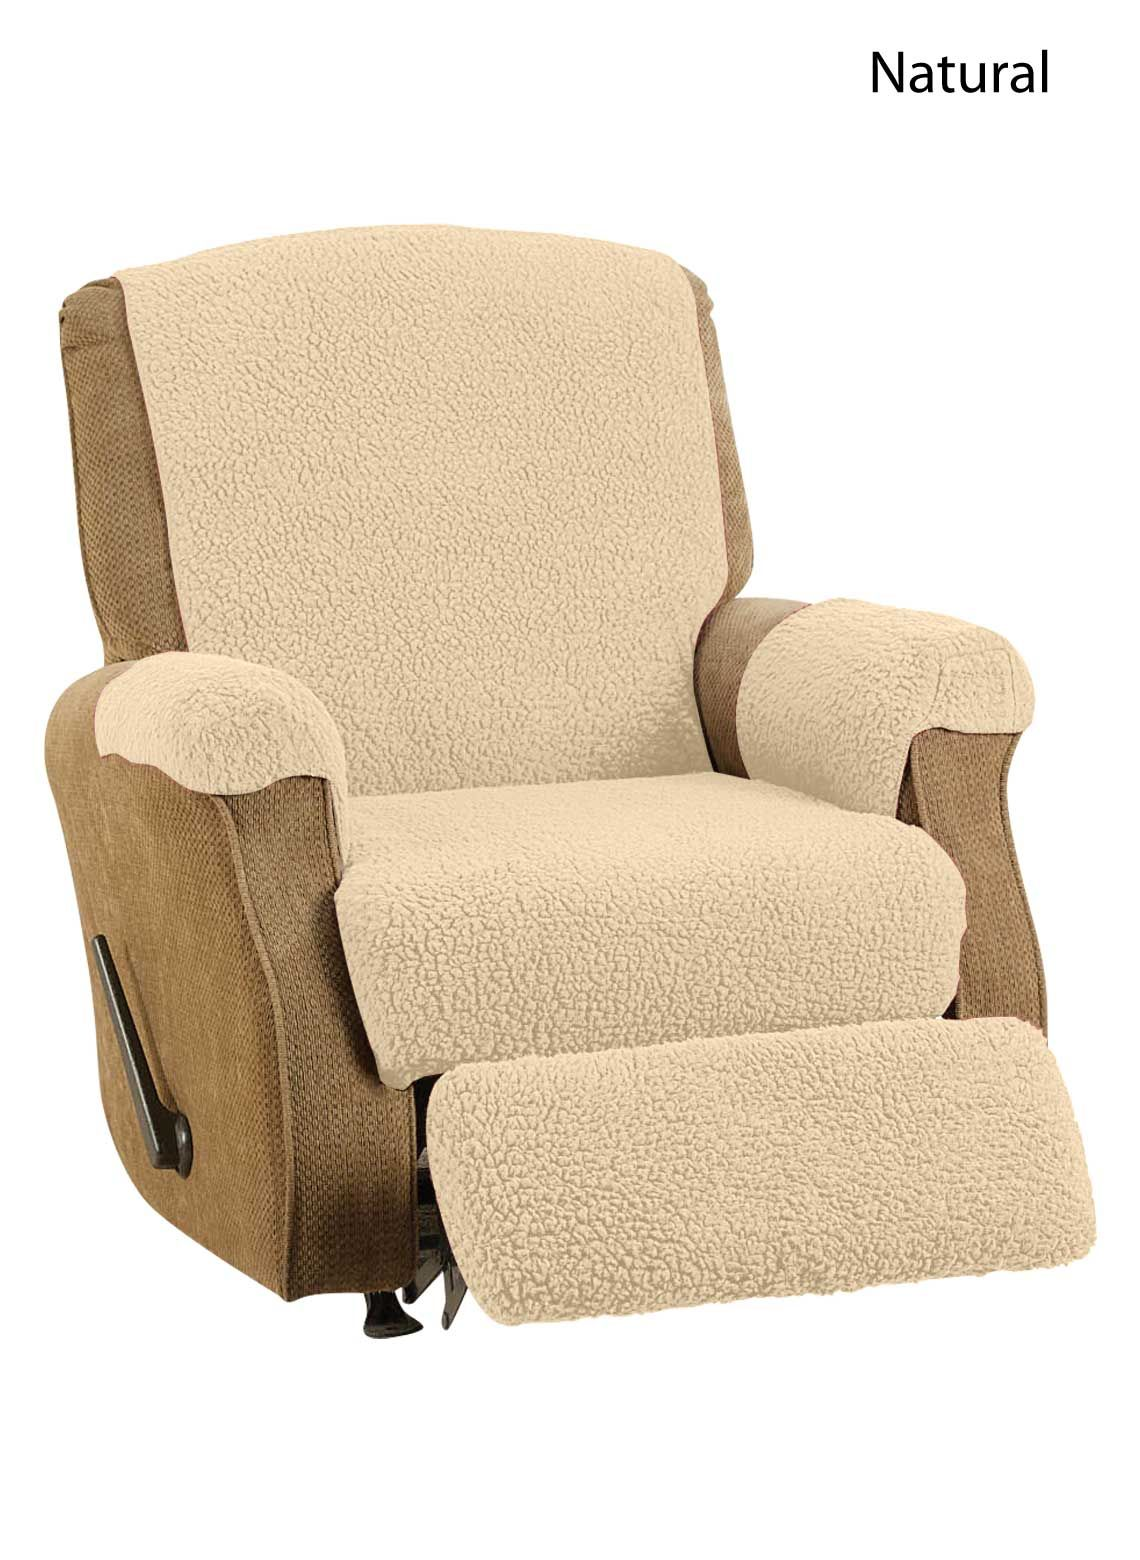 fleece recliner cover 19 99 camel color cwg things i want